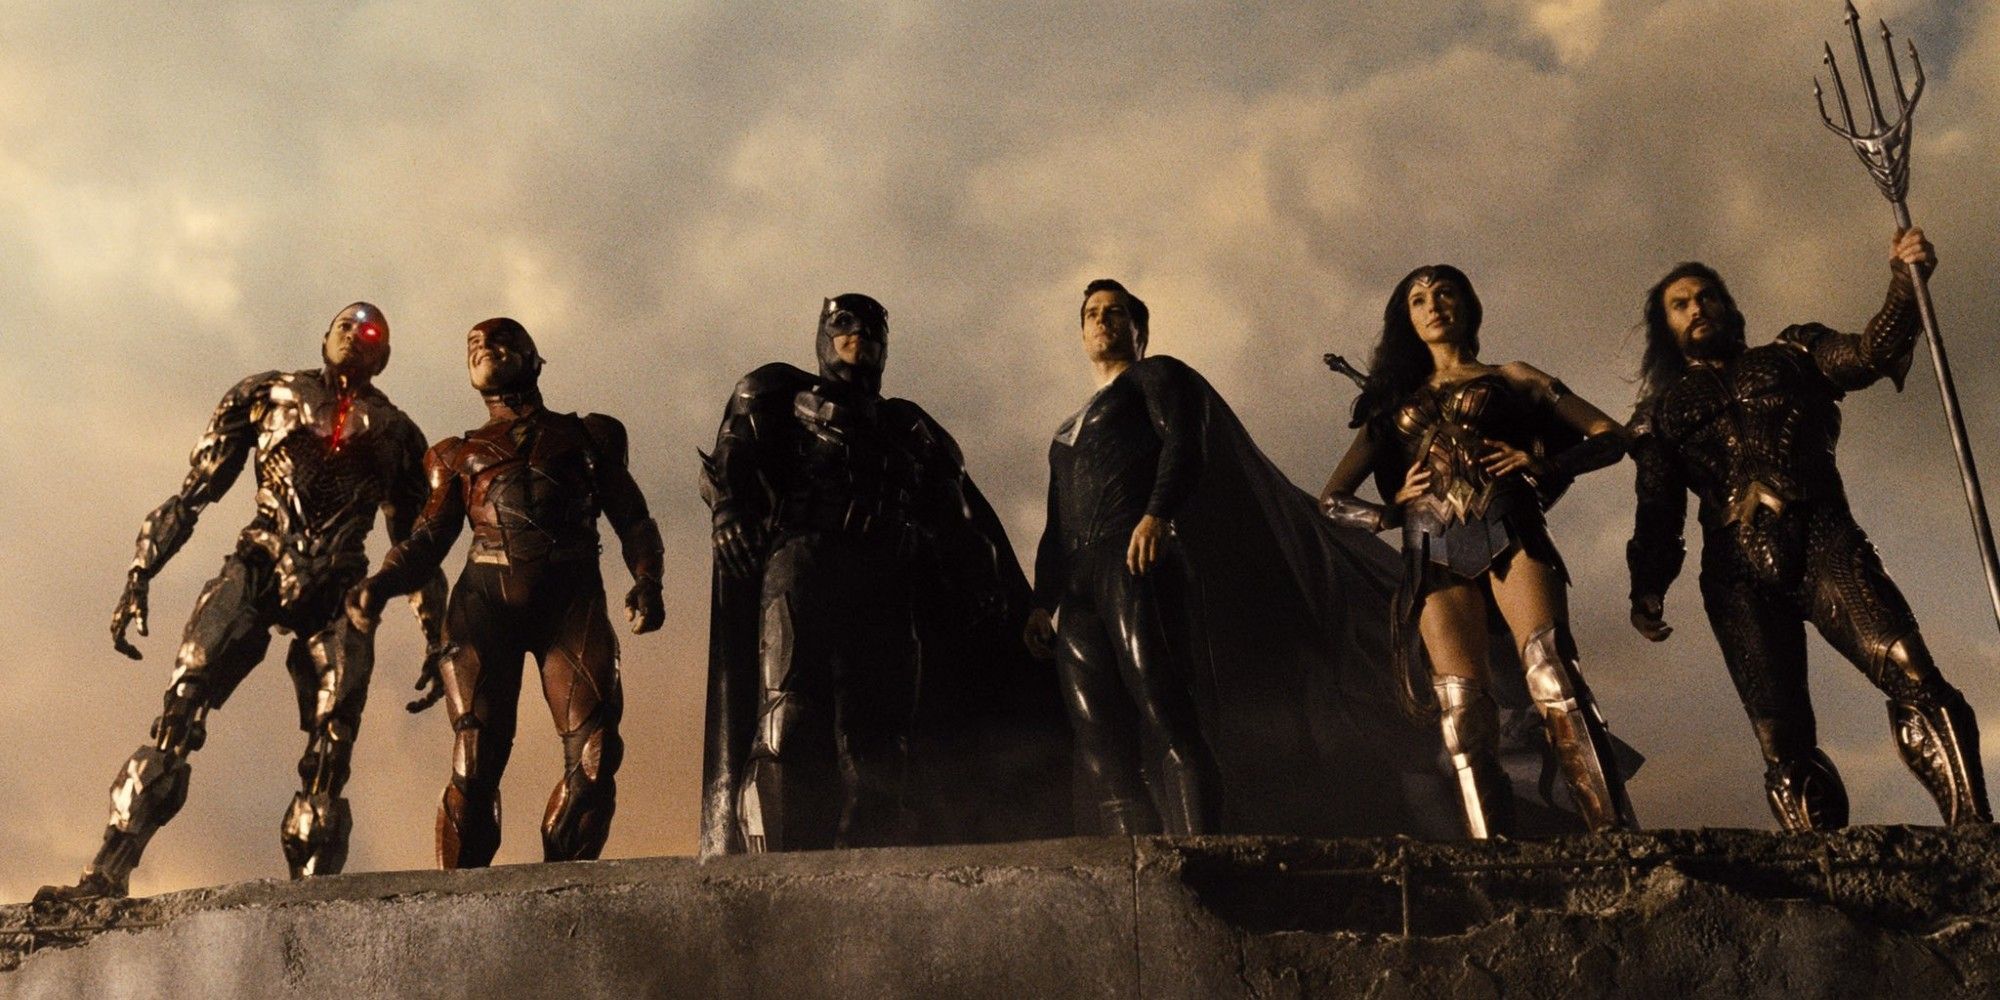 Avengers: Endgame Directors Will Be Watching Zack Snyder's Justice League